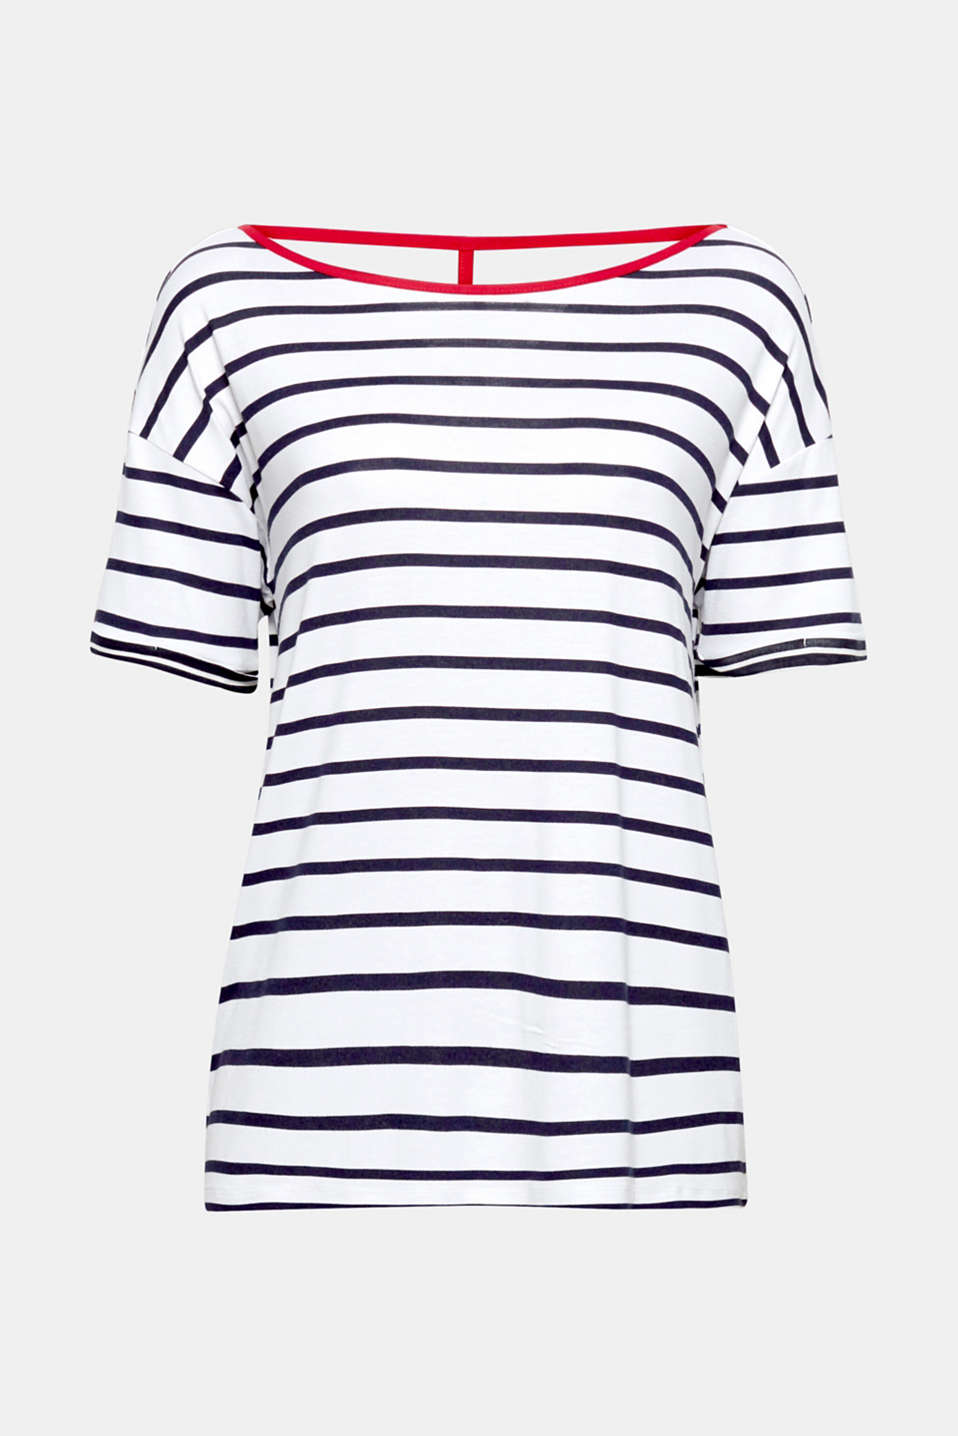 Striped T-shirt with a surprise: The neckline trim and back strap come in a contrasting colour!